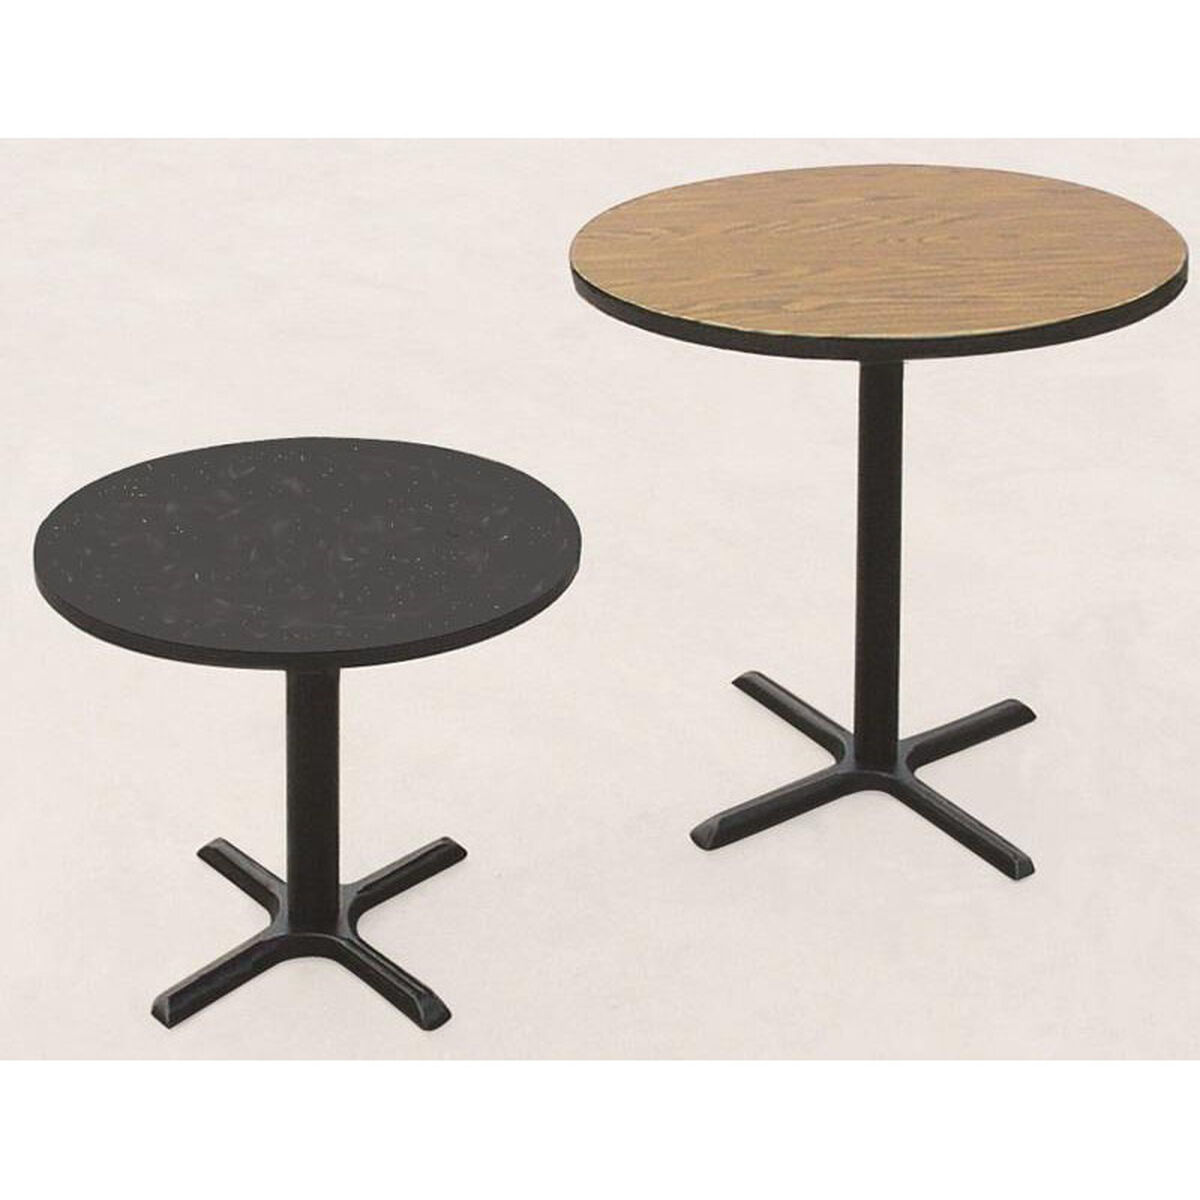 Round Cafe Table BCTR SchoolFurnitureLesscom - Round metal cafe table